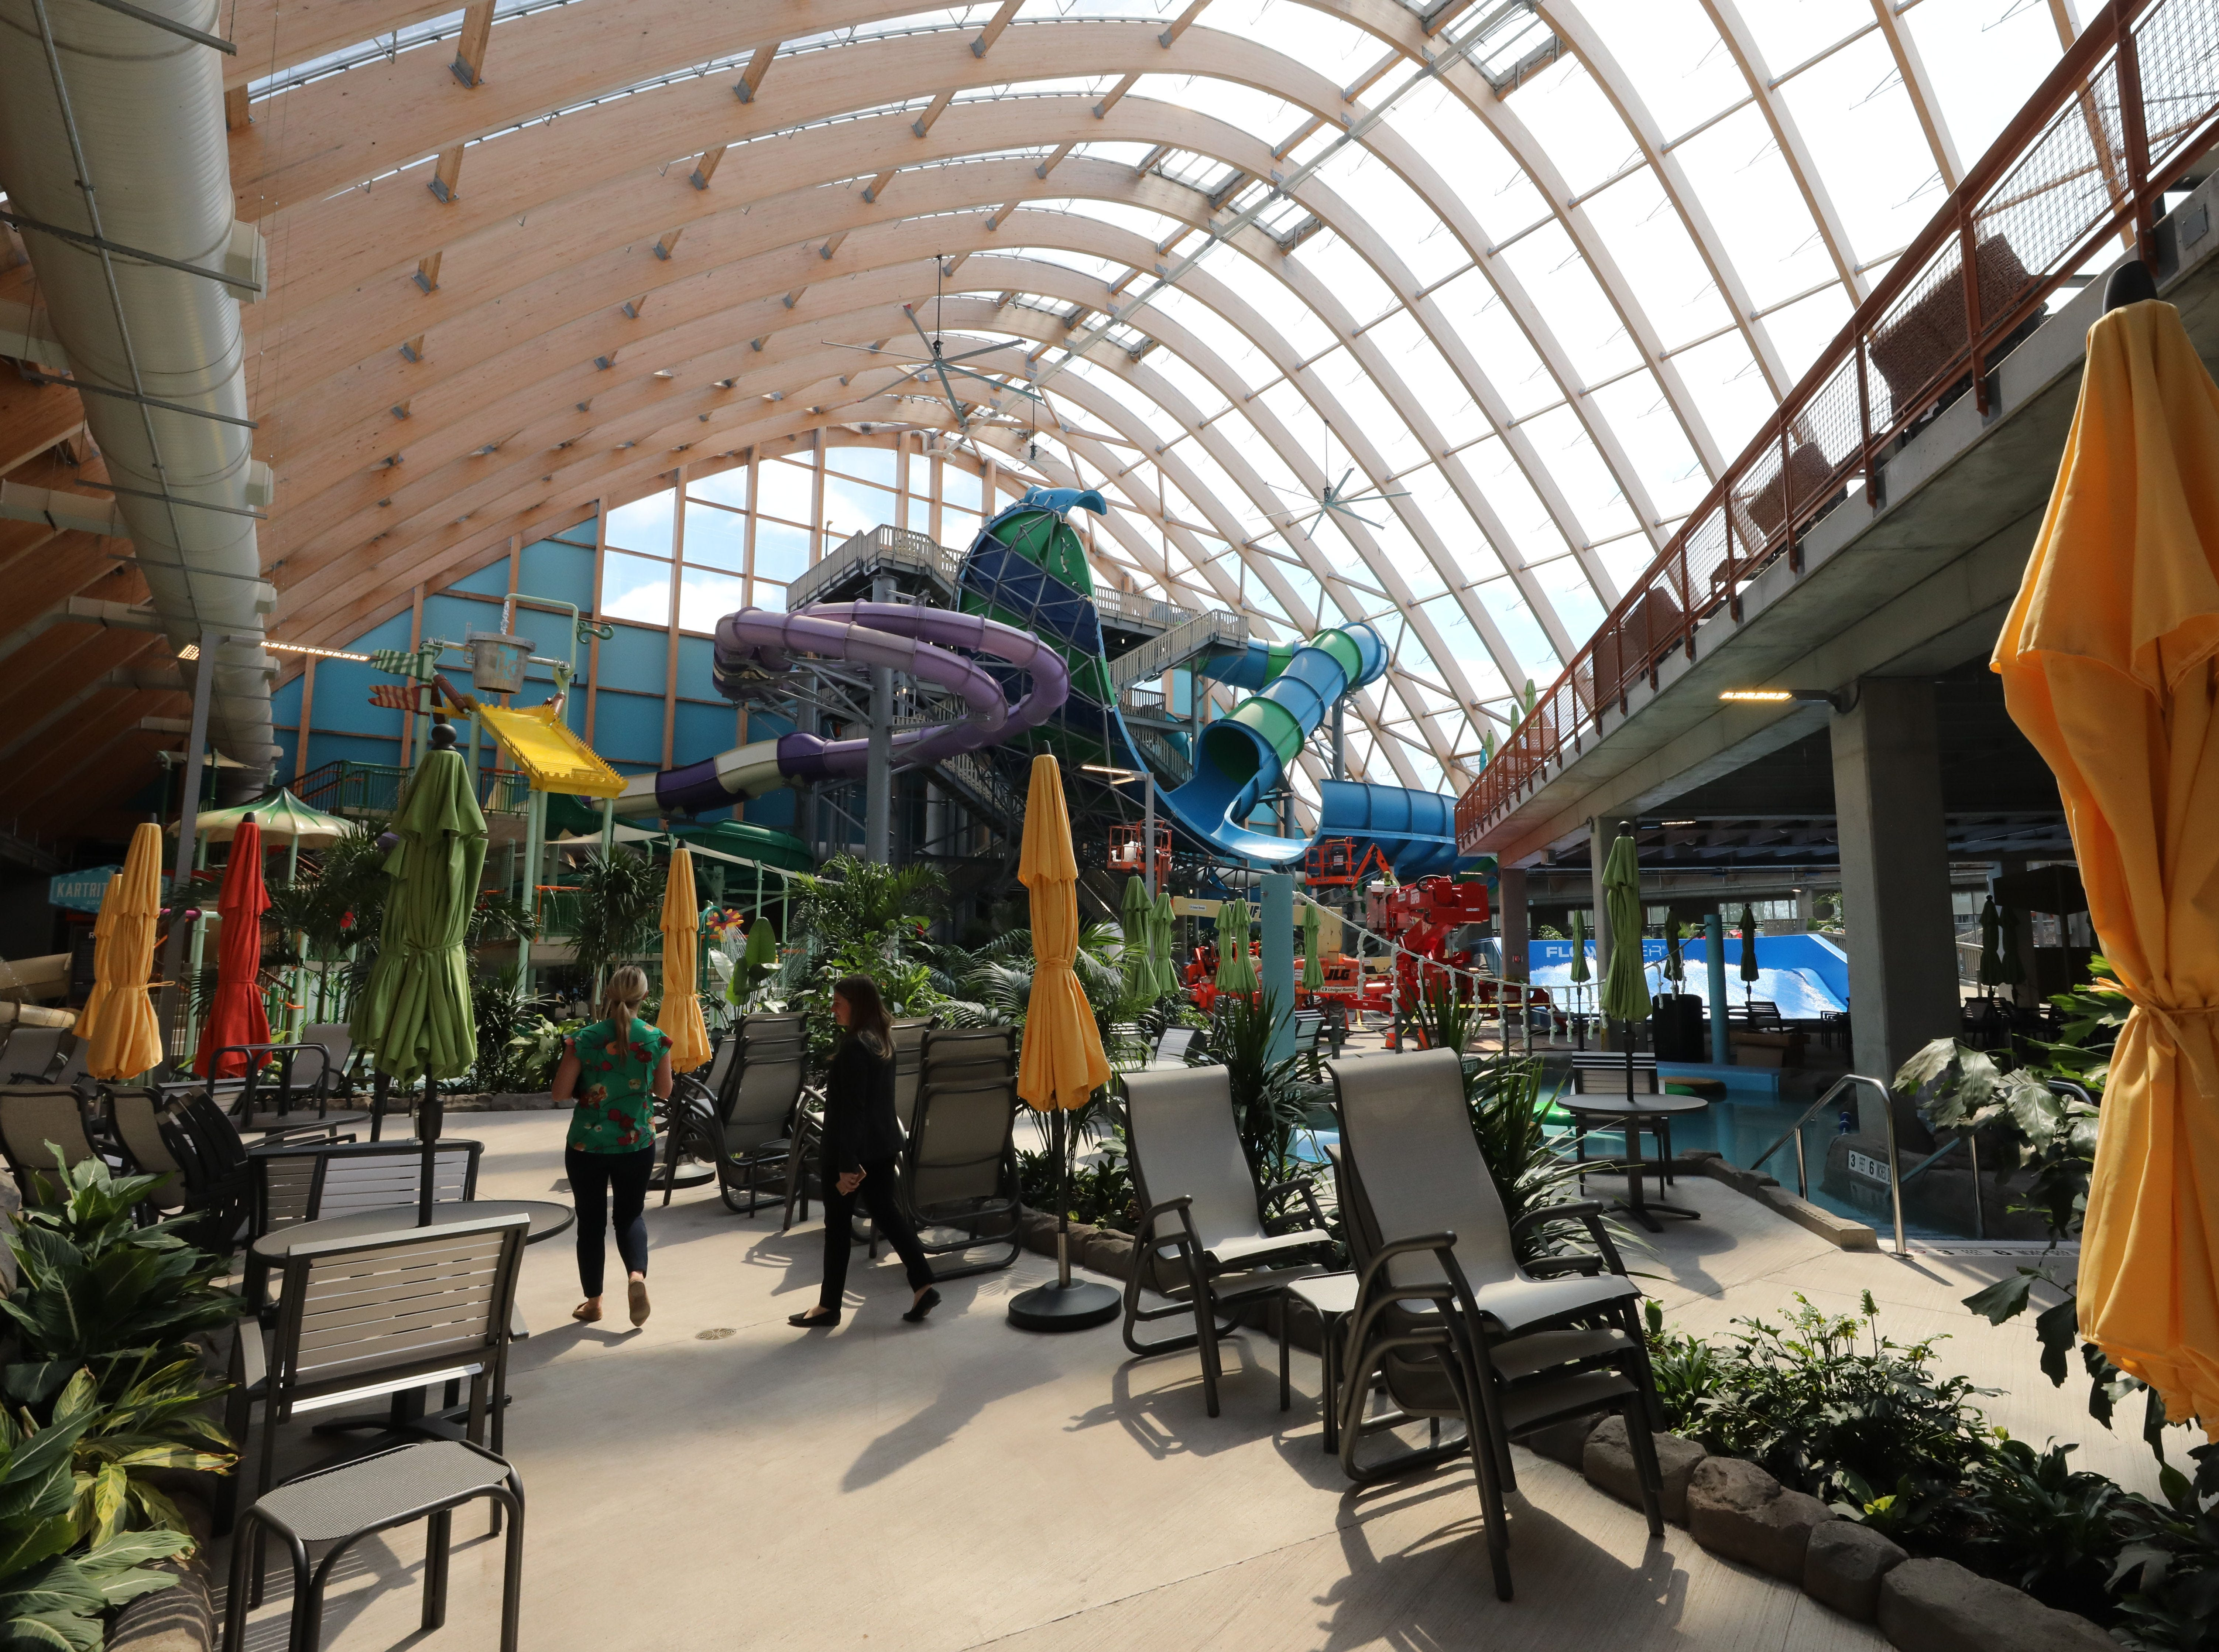 The interior of the waterpark, where the 60,000 square foot transparent roofing system, keeps the interior at a toasty 84 degrees for year round warmth, at The Kartrite Resort & Indoor Waterpark in Monticello, April 10, 2019.